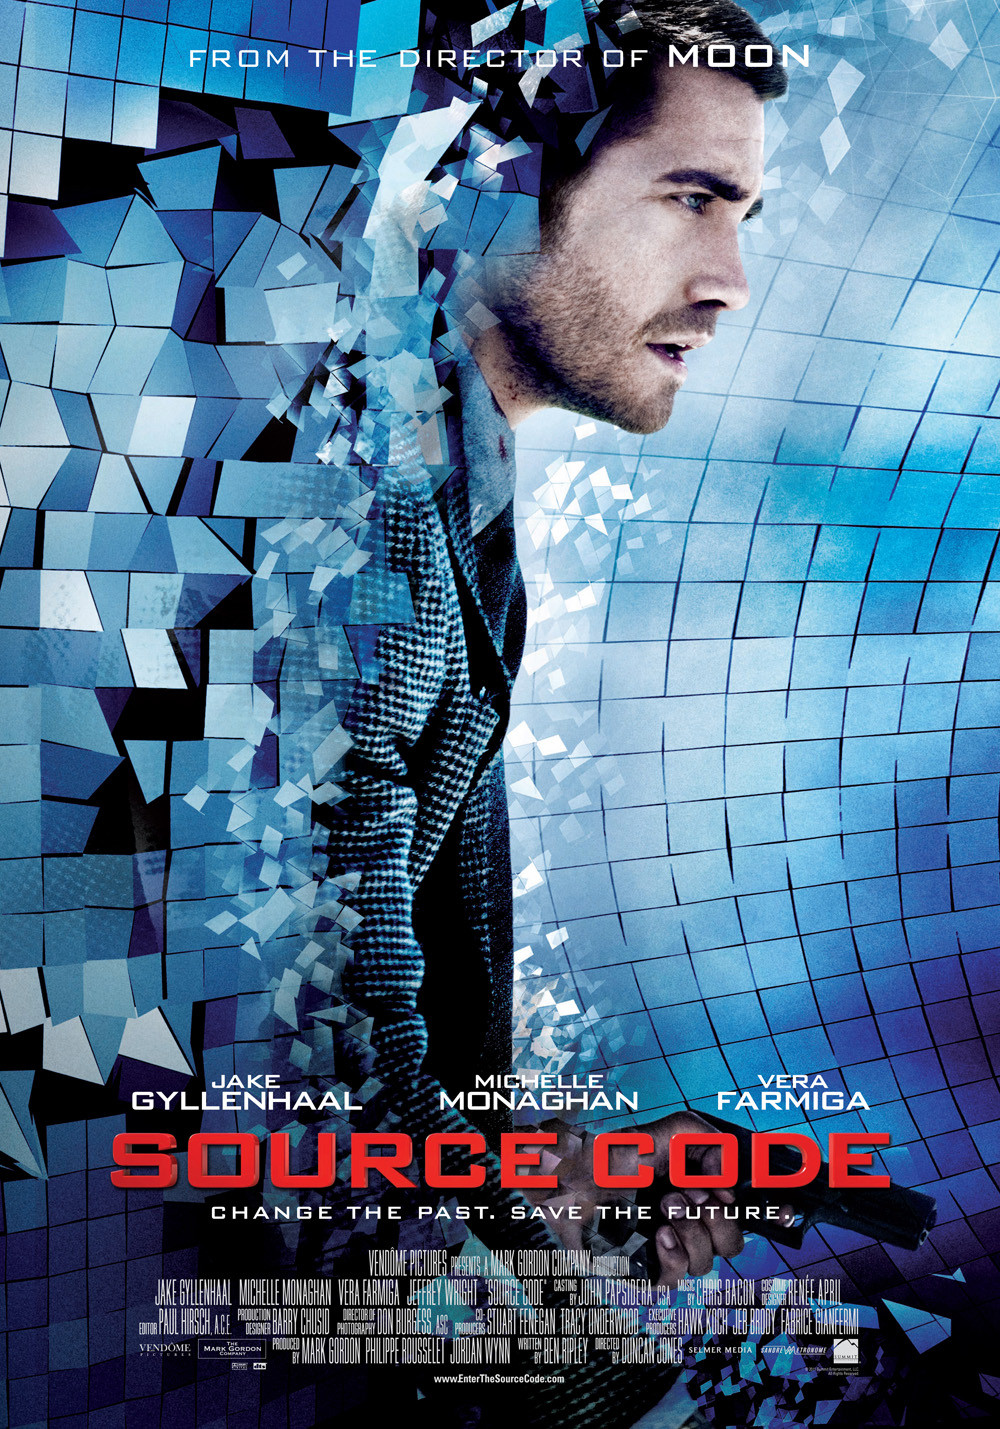 Source-Code-POSTER2